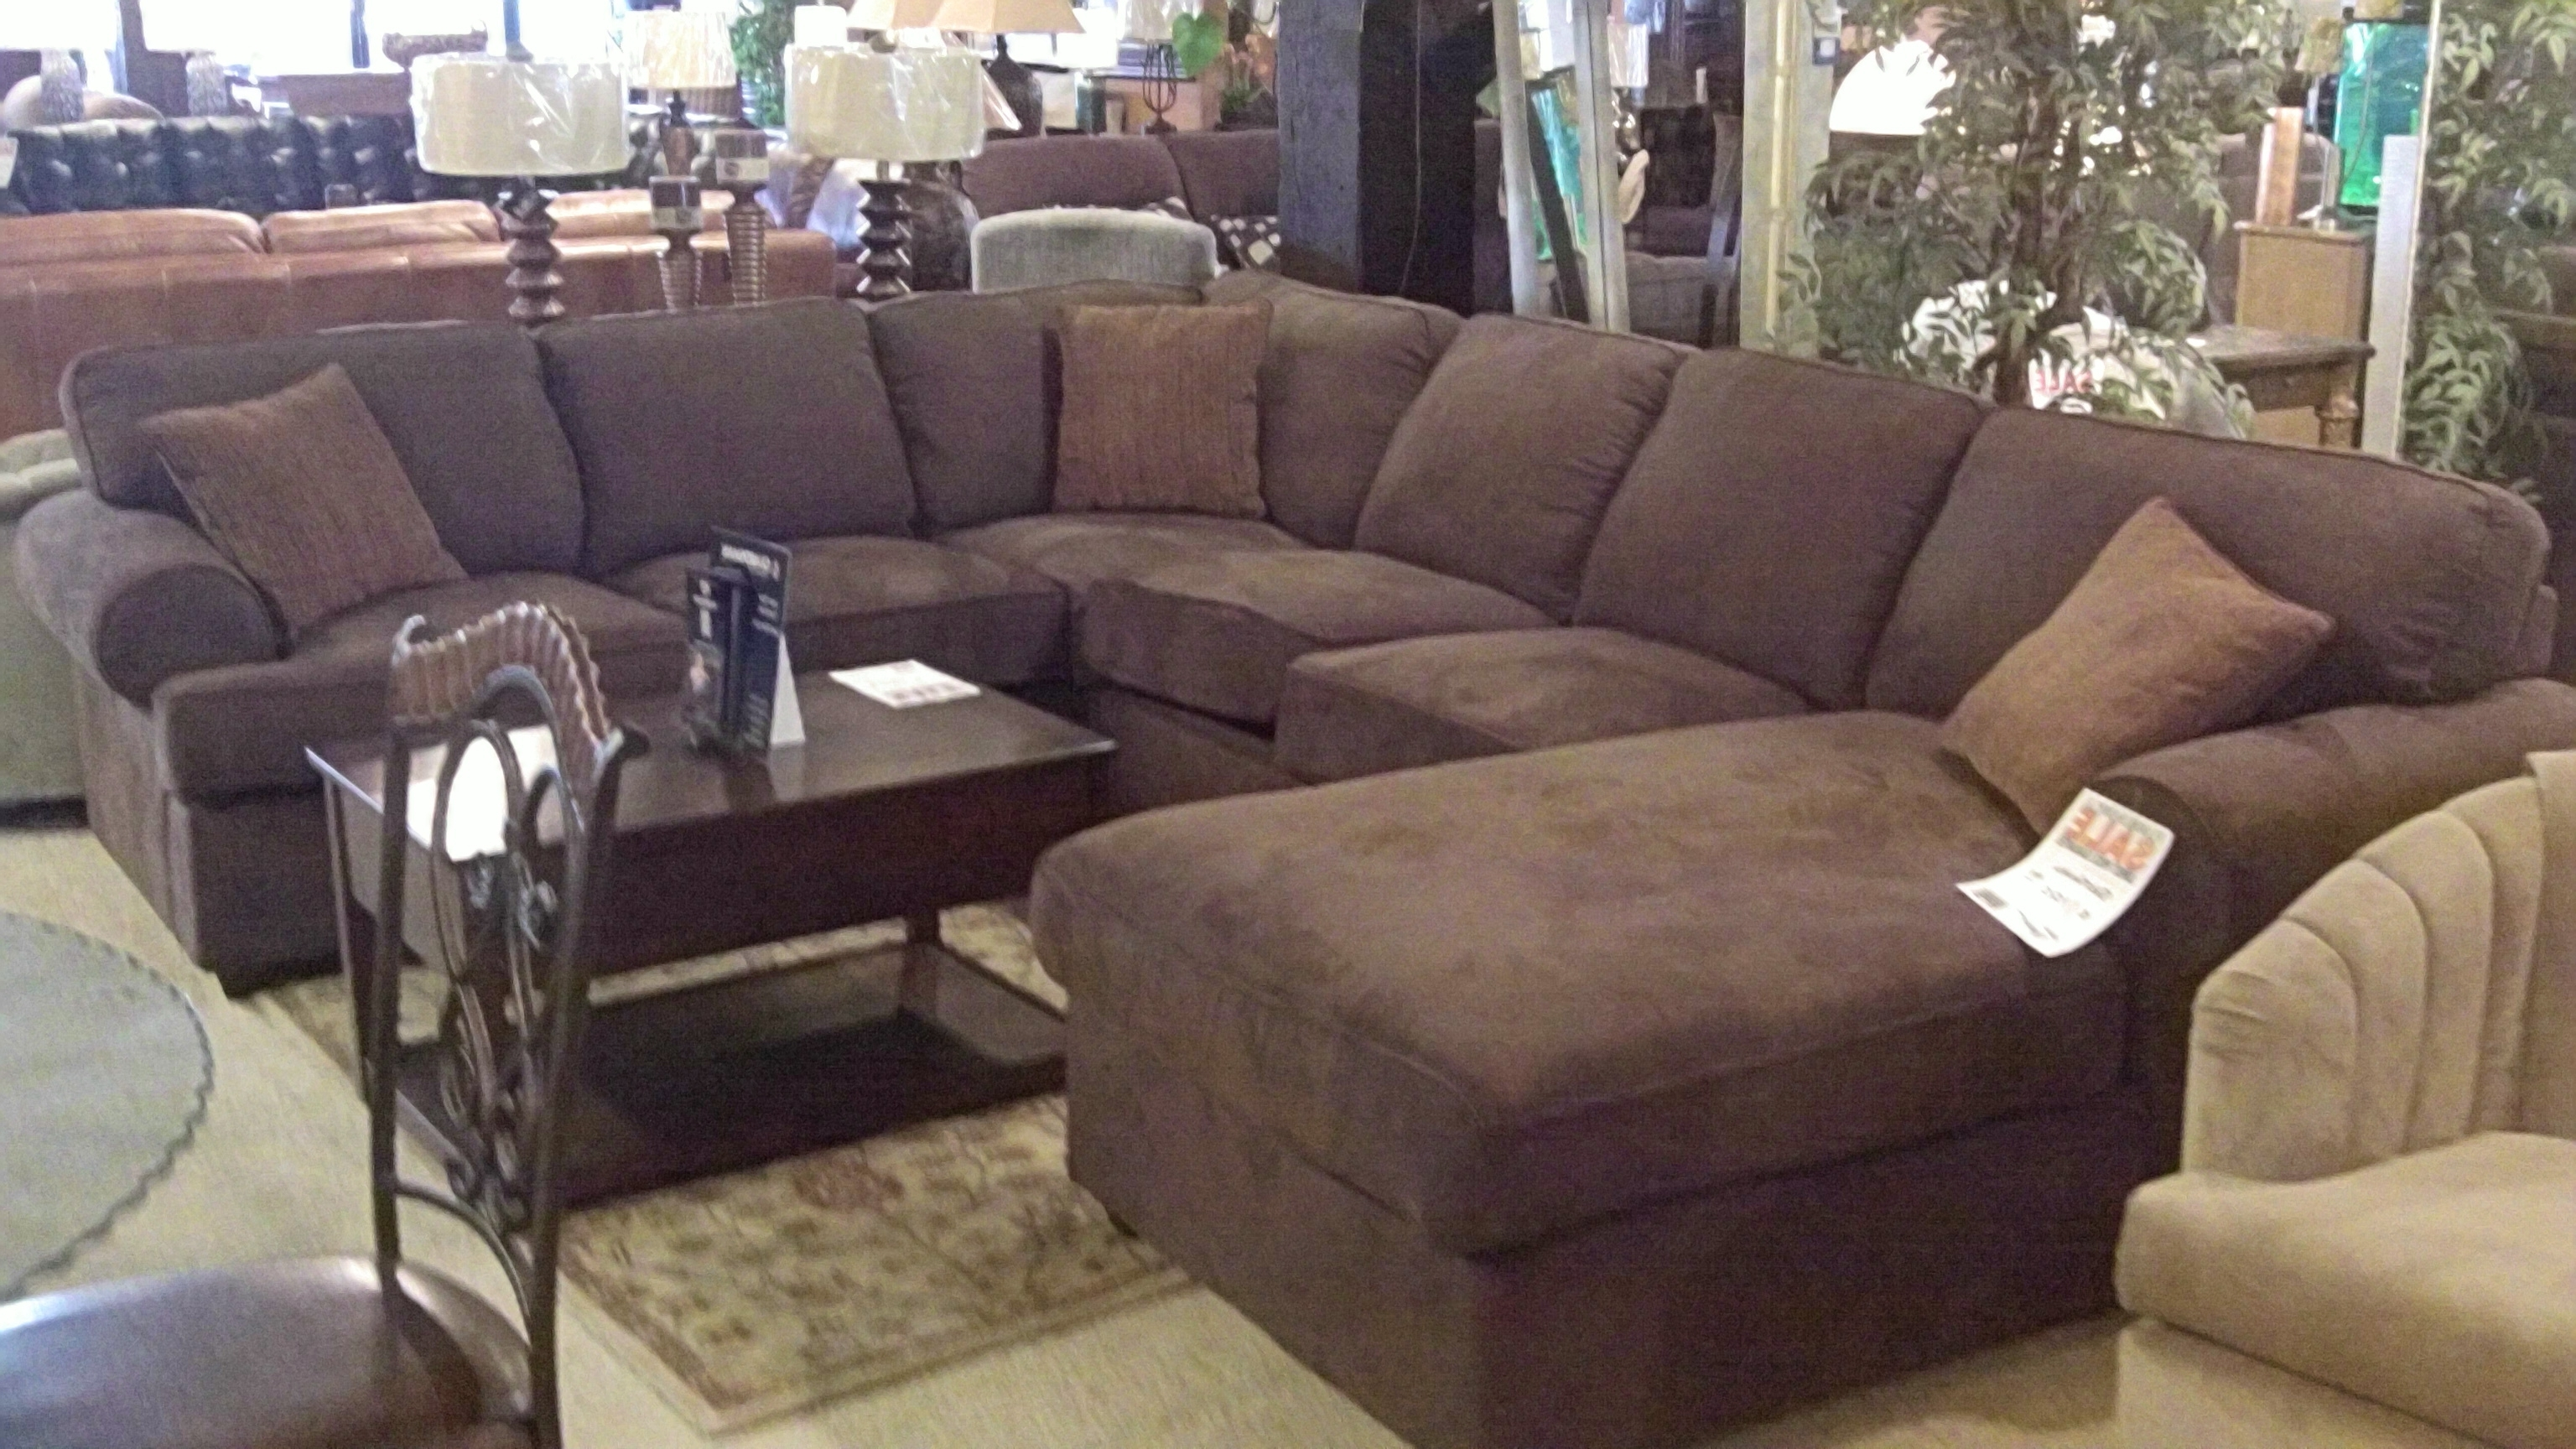 Large Sectionals With Chaise Regarding Best And Newest Leather Sectional Sofa With Chaise Lounge Leather Sectional Sofas (View 6 of 15)